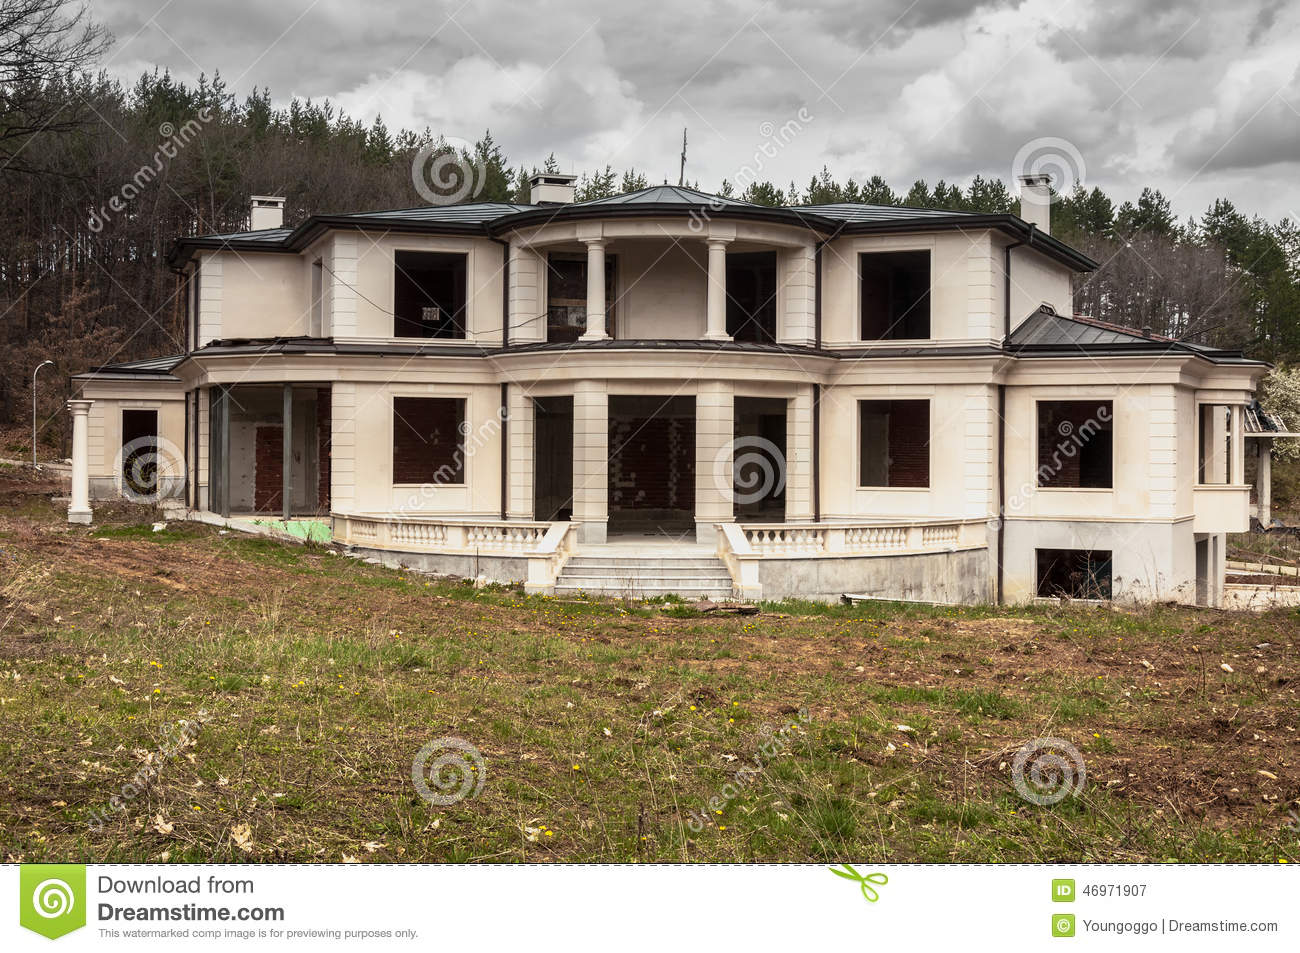 Grande maison moderne non finie abandonne photo stock with for Grande maison moderne